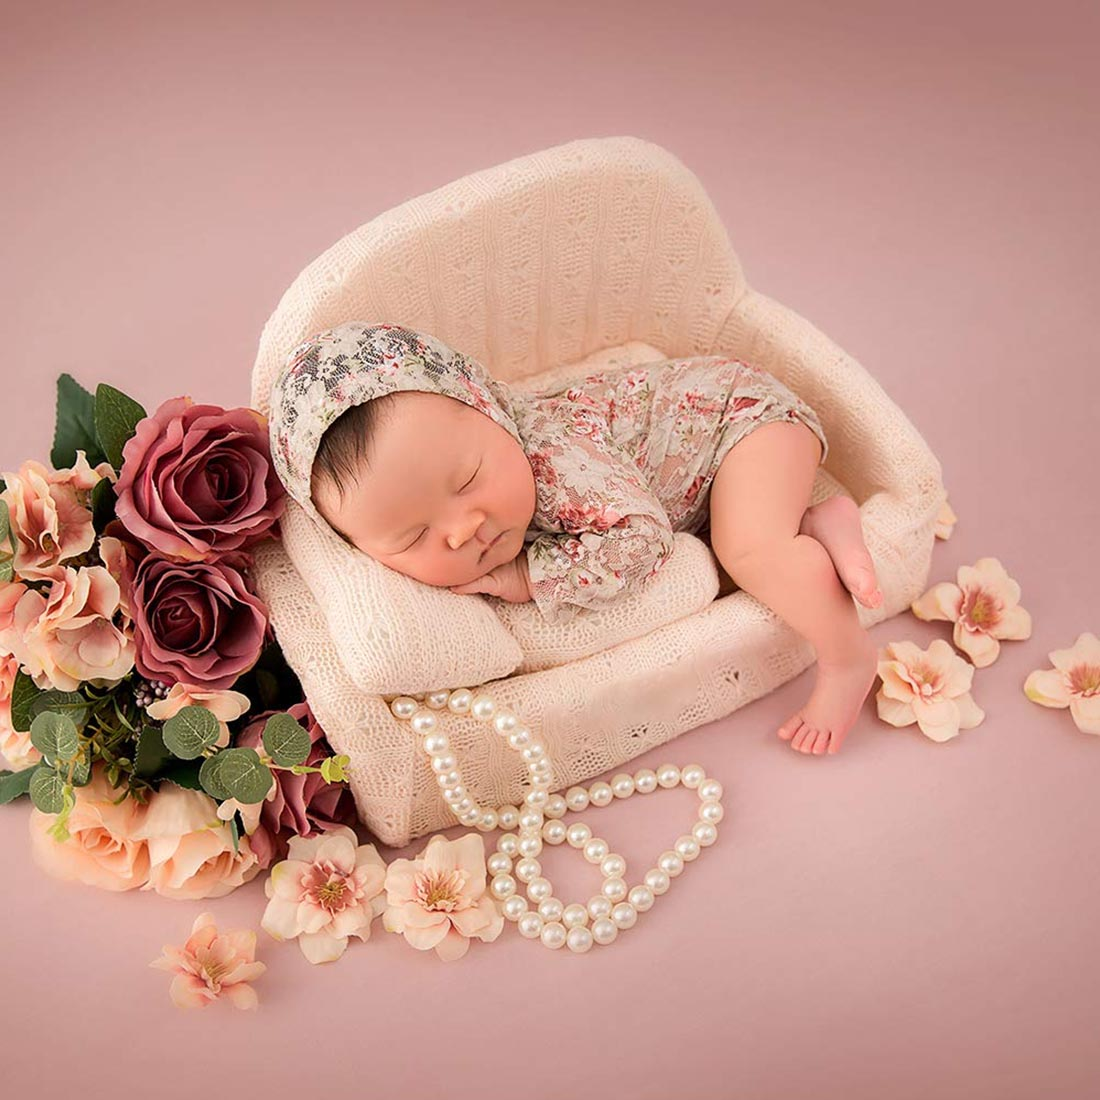 Decoration Baby Photography Accessories Newborn Photography Props Mini Posing Sofa Pillow Set Chair Infant Studio Shooting Props